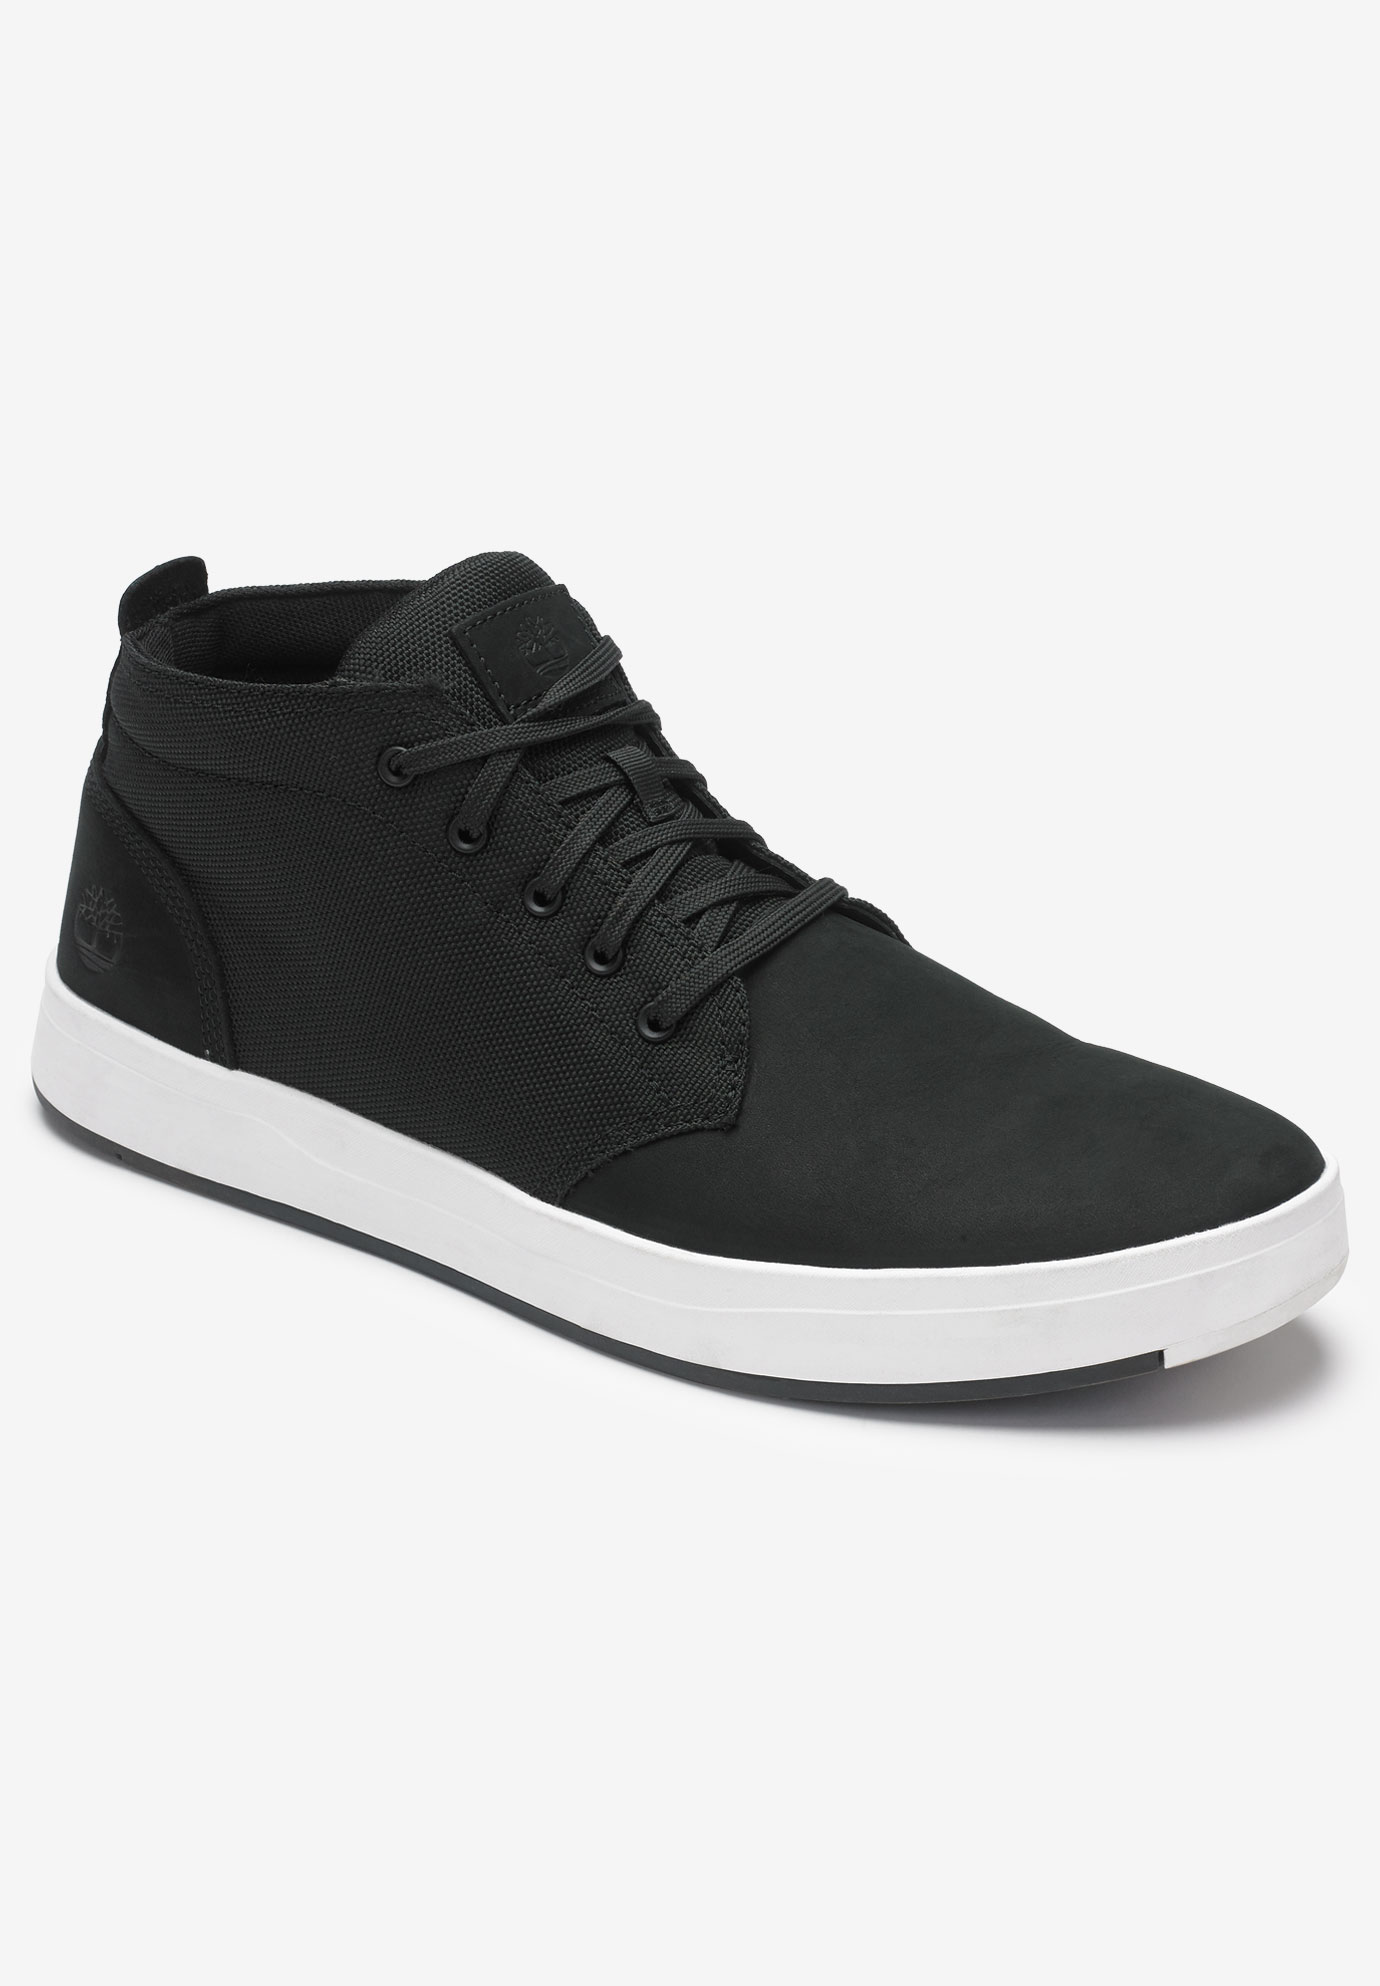 Timberland® Davis Square Chukka Shoes,